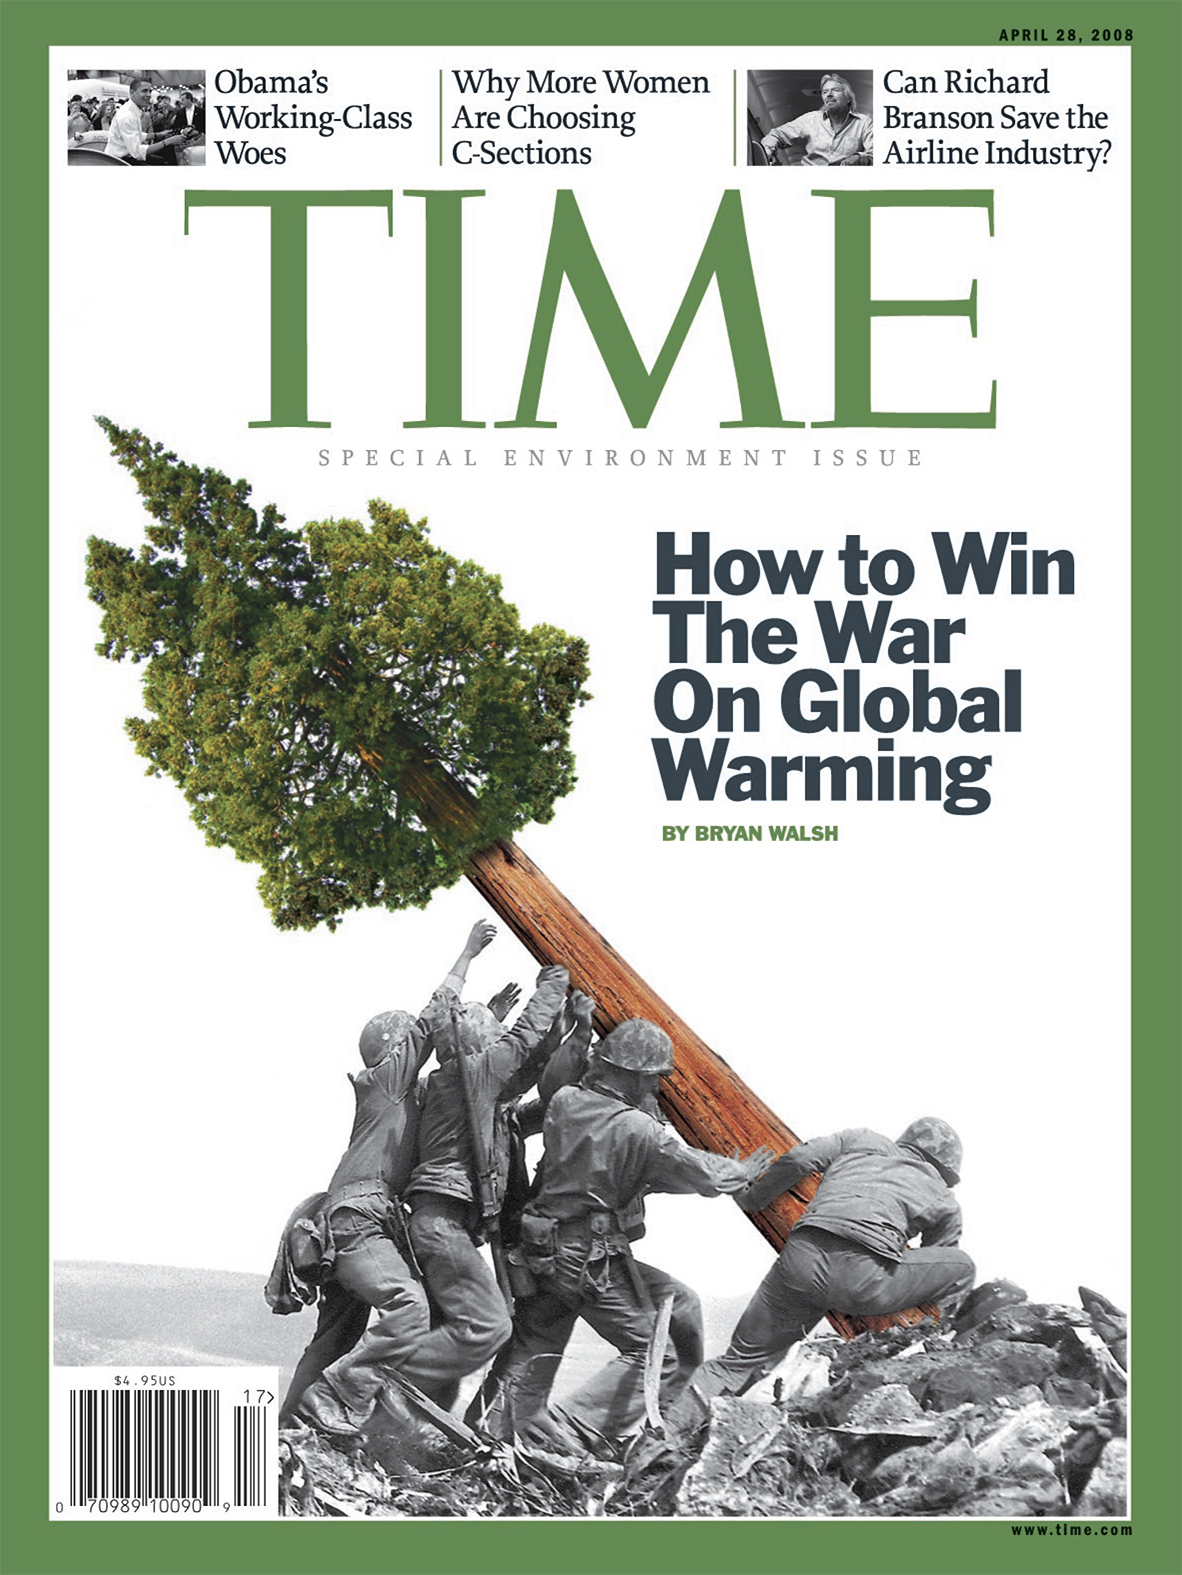 The April 28, 2008 issue of TIME magazine.